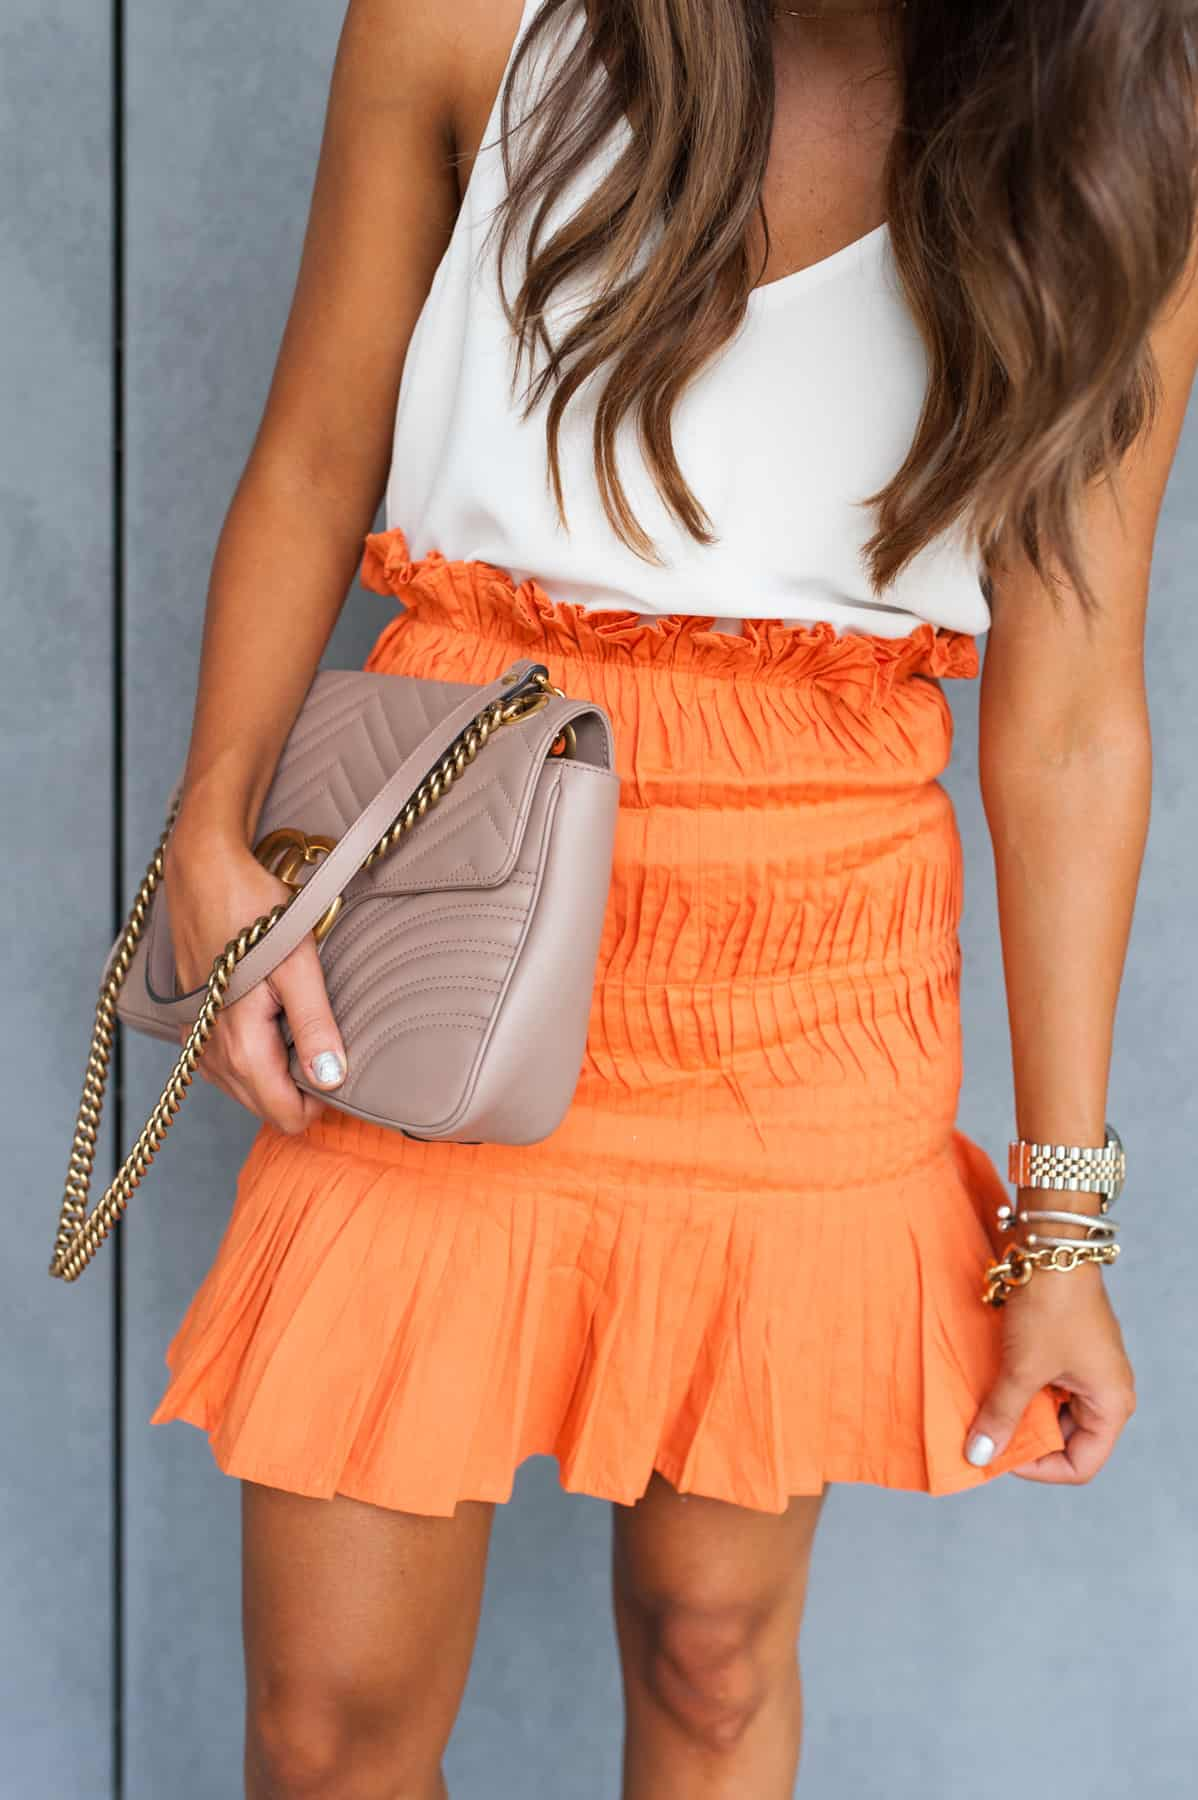 dress up buttercup, dede raad, houston blogger, fashion blogger, shirred ruffle skirt